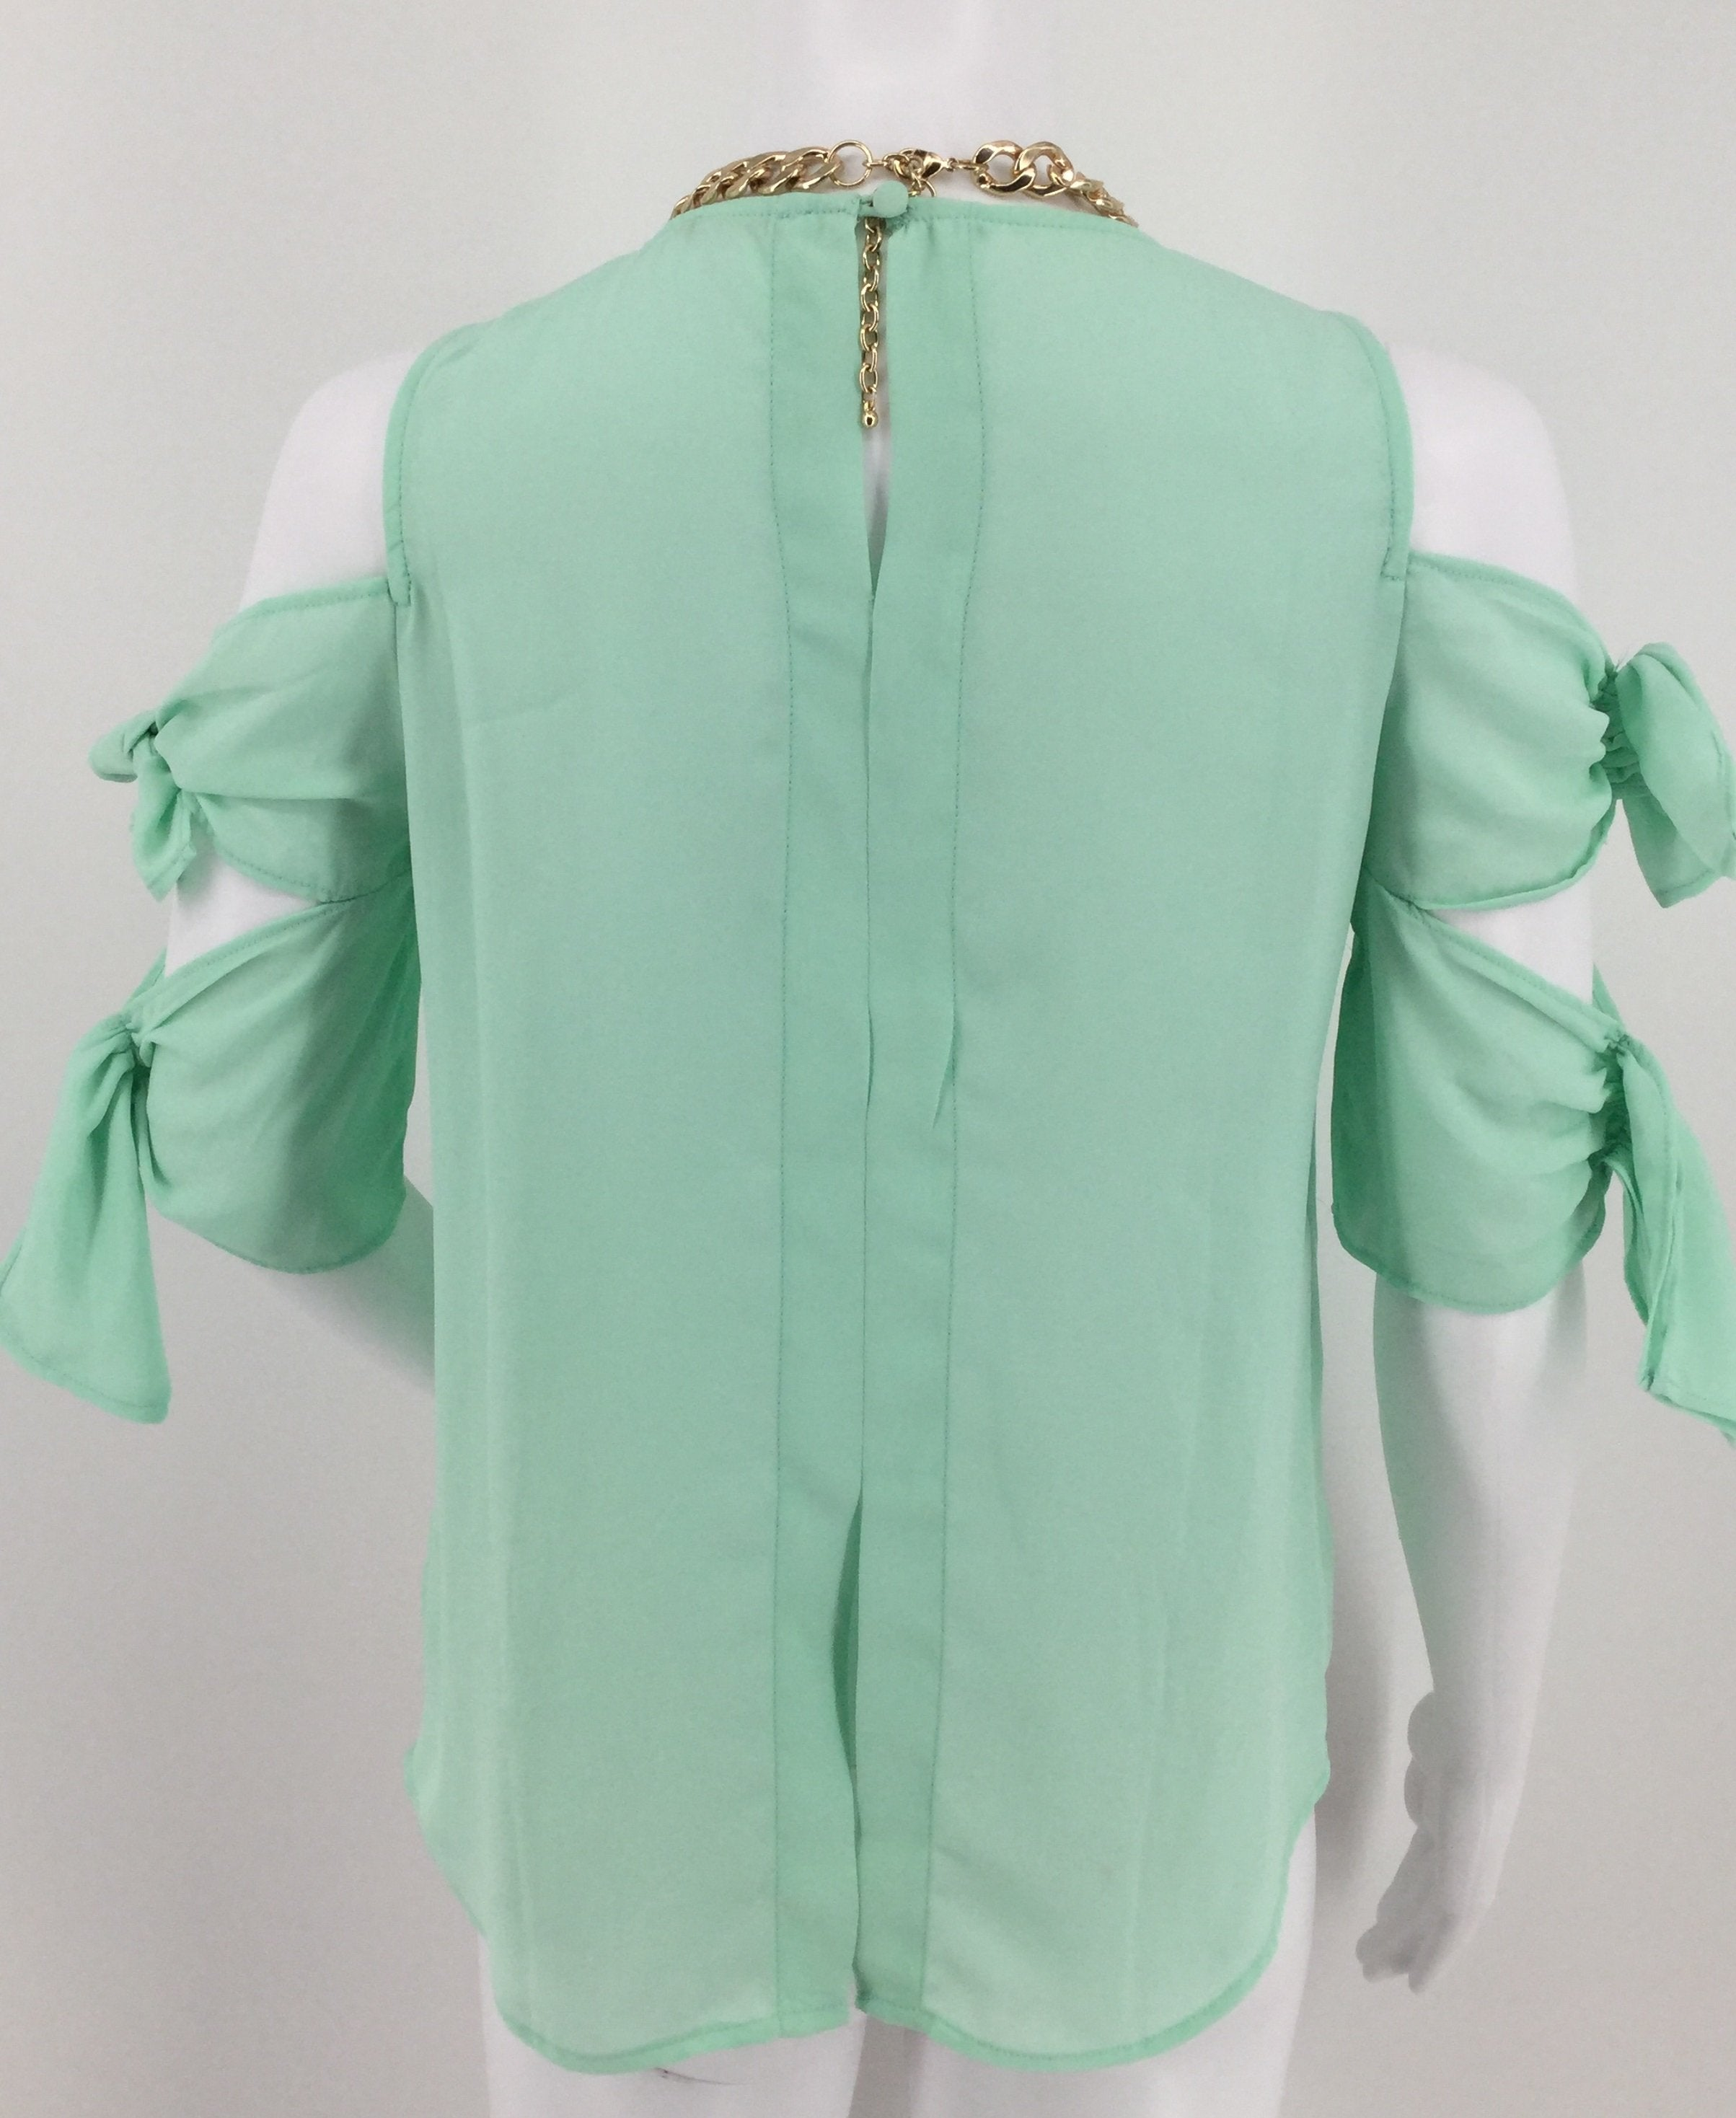 Gianni Bini Mint Green Cold Shoulder Short Sleeve Top Size S - <p> </p> <ul> <li>gianni bini mint green cold shoulder short sleeve top size small</li> </ul> <p> </p> <ul> <li>slight open back</li> </ul> <p> </p> <ul> <li>keyhole cutout at top with button</li> </ul> <p> </p> <ul> <li>pair with jeans or a skirt for an adorable summer outfit!</li> </ul> <p> </p> <p>necklace not included</p>